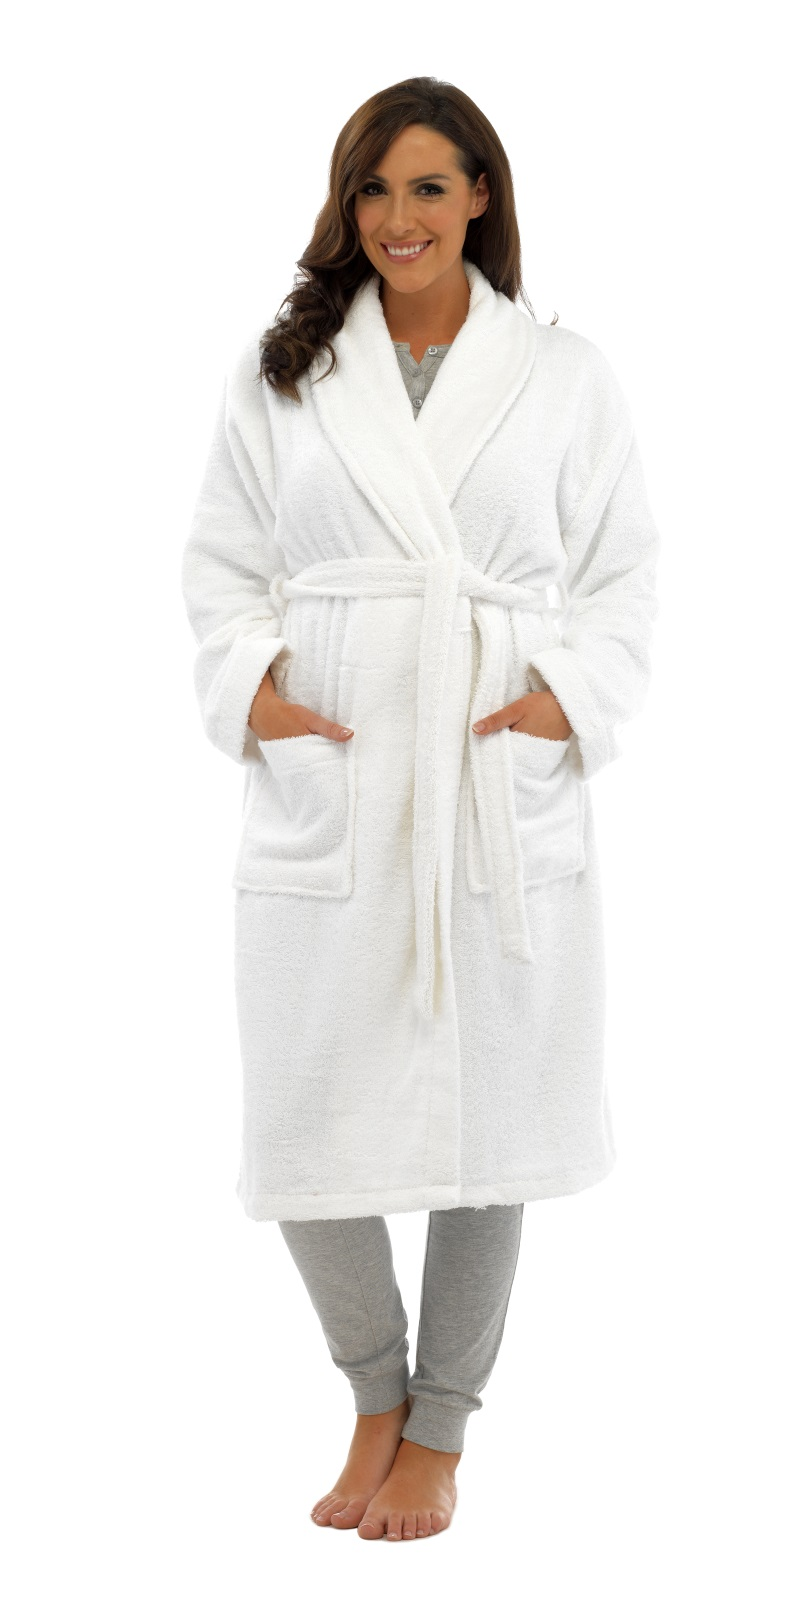 The Bathrobes Redefined - Unlike any bathrobes you have ever seen - European style designer bathrobes for men and women in % organic Turkish cotton. Now available in the U.S.A., we feature the largest variety of luxury and designer bathrobes with different trims, fabric colors, lightweight to plush velour and double looped terry cloth.